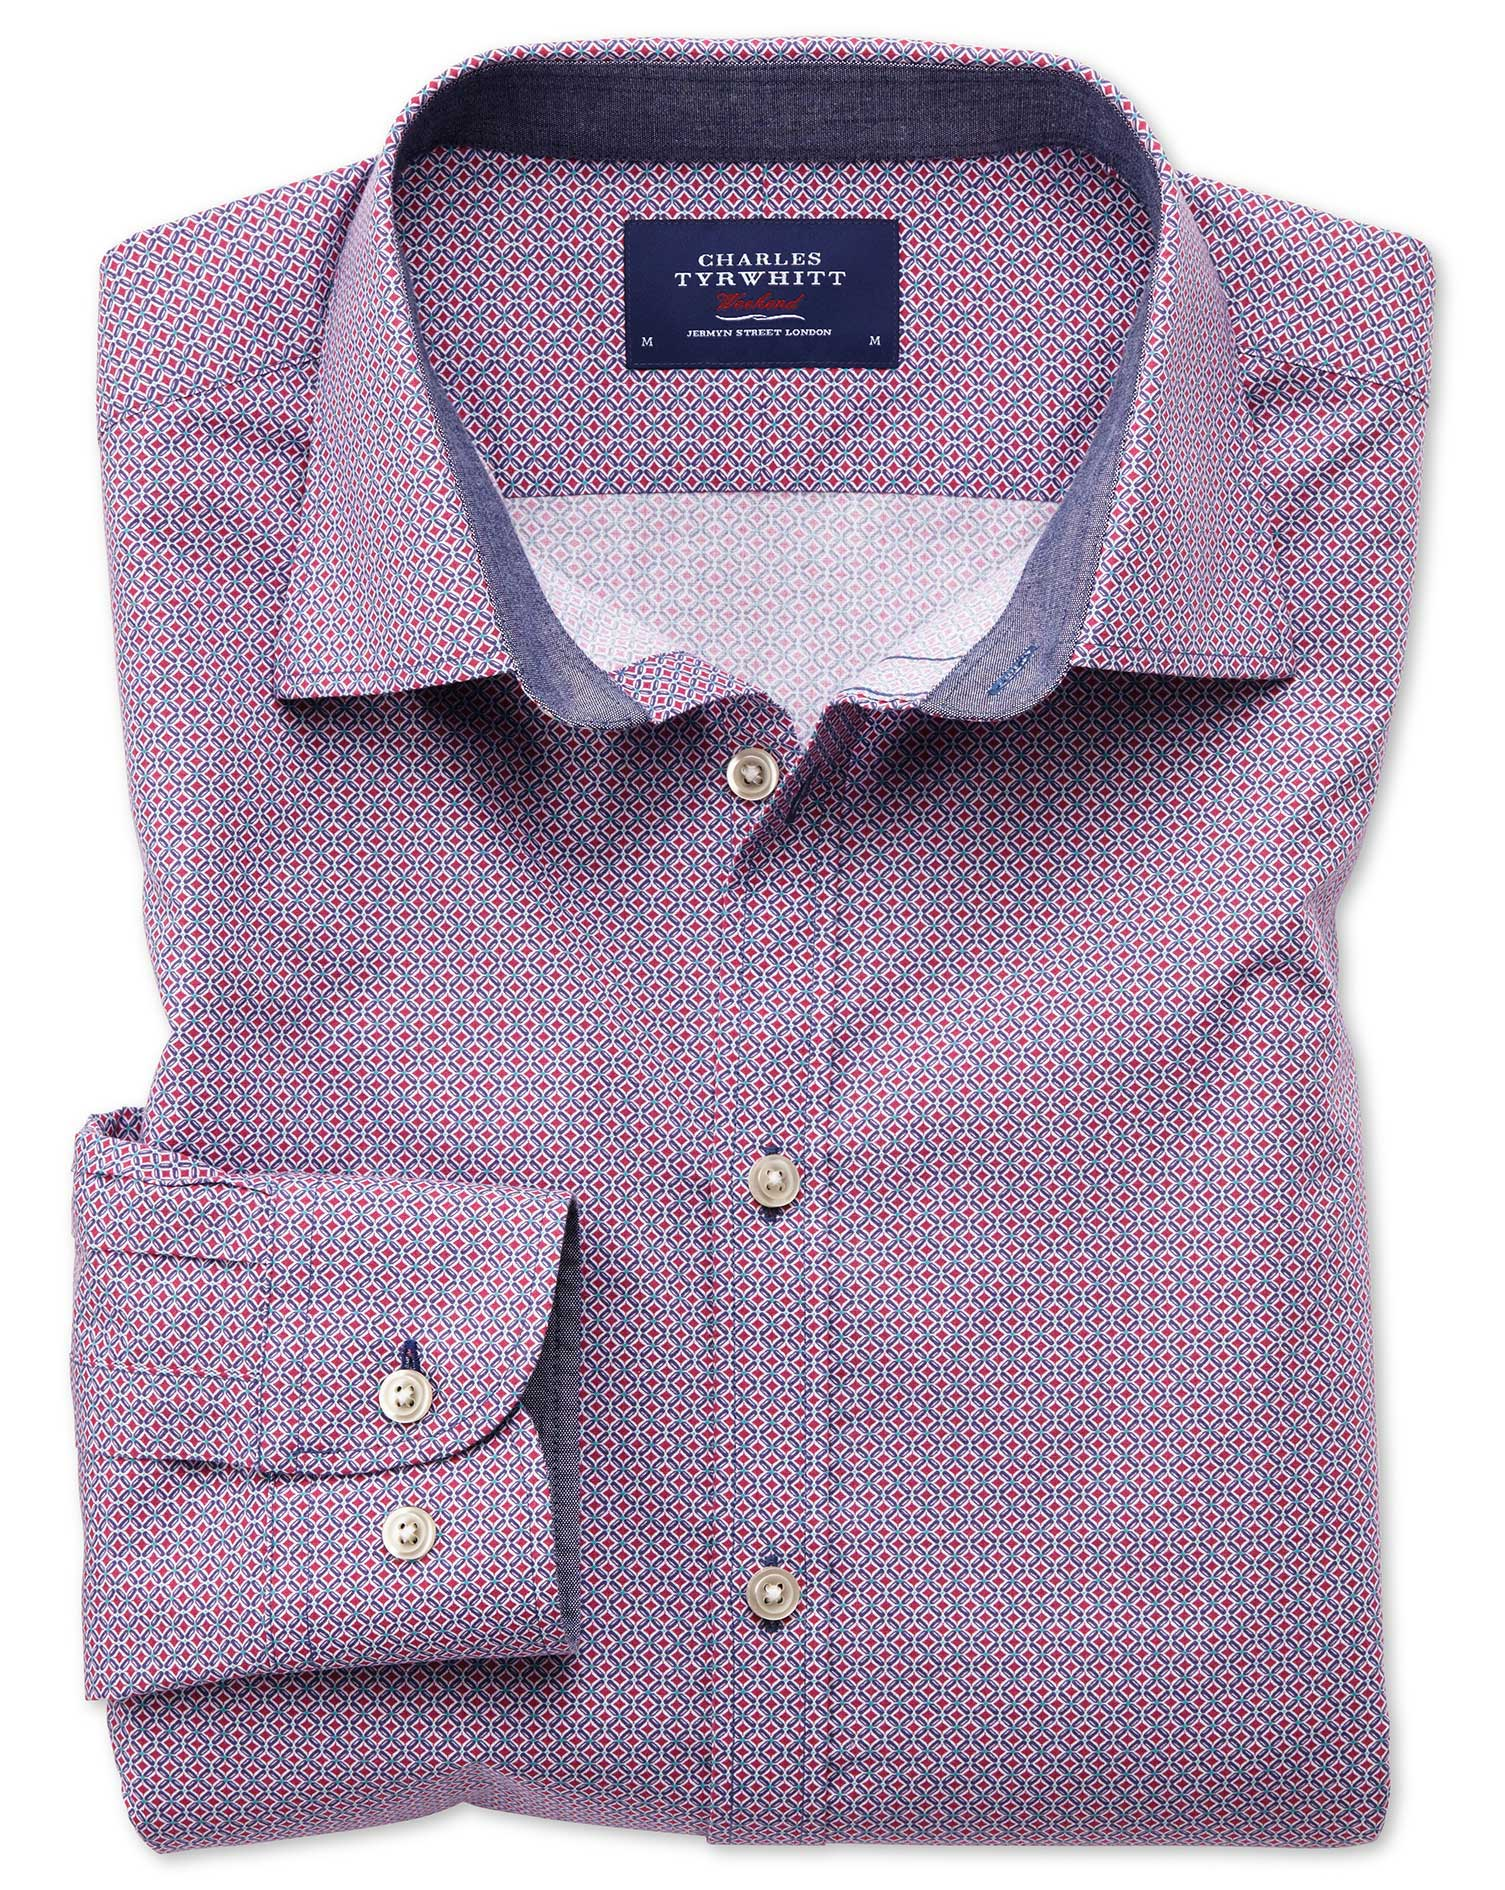 Slim Fit Magenta and Blue Print Cotton Shirt Single Cuff Size Medium by Charles Tyrwhitt